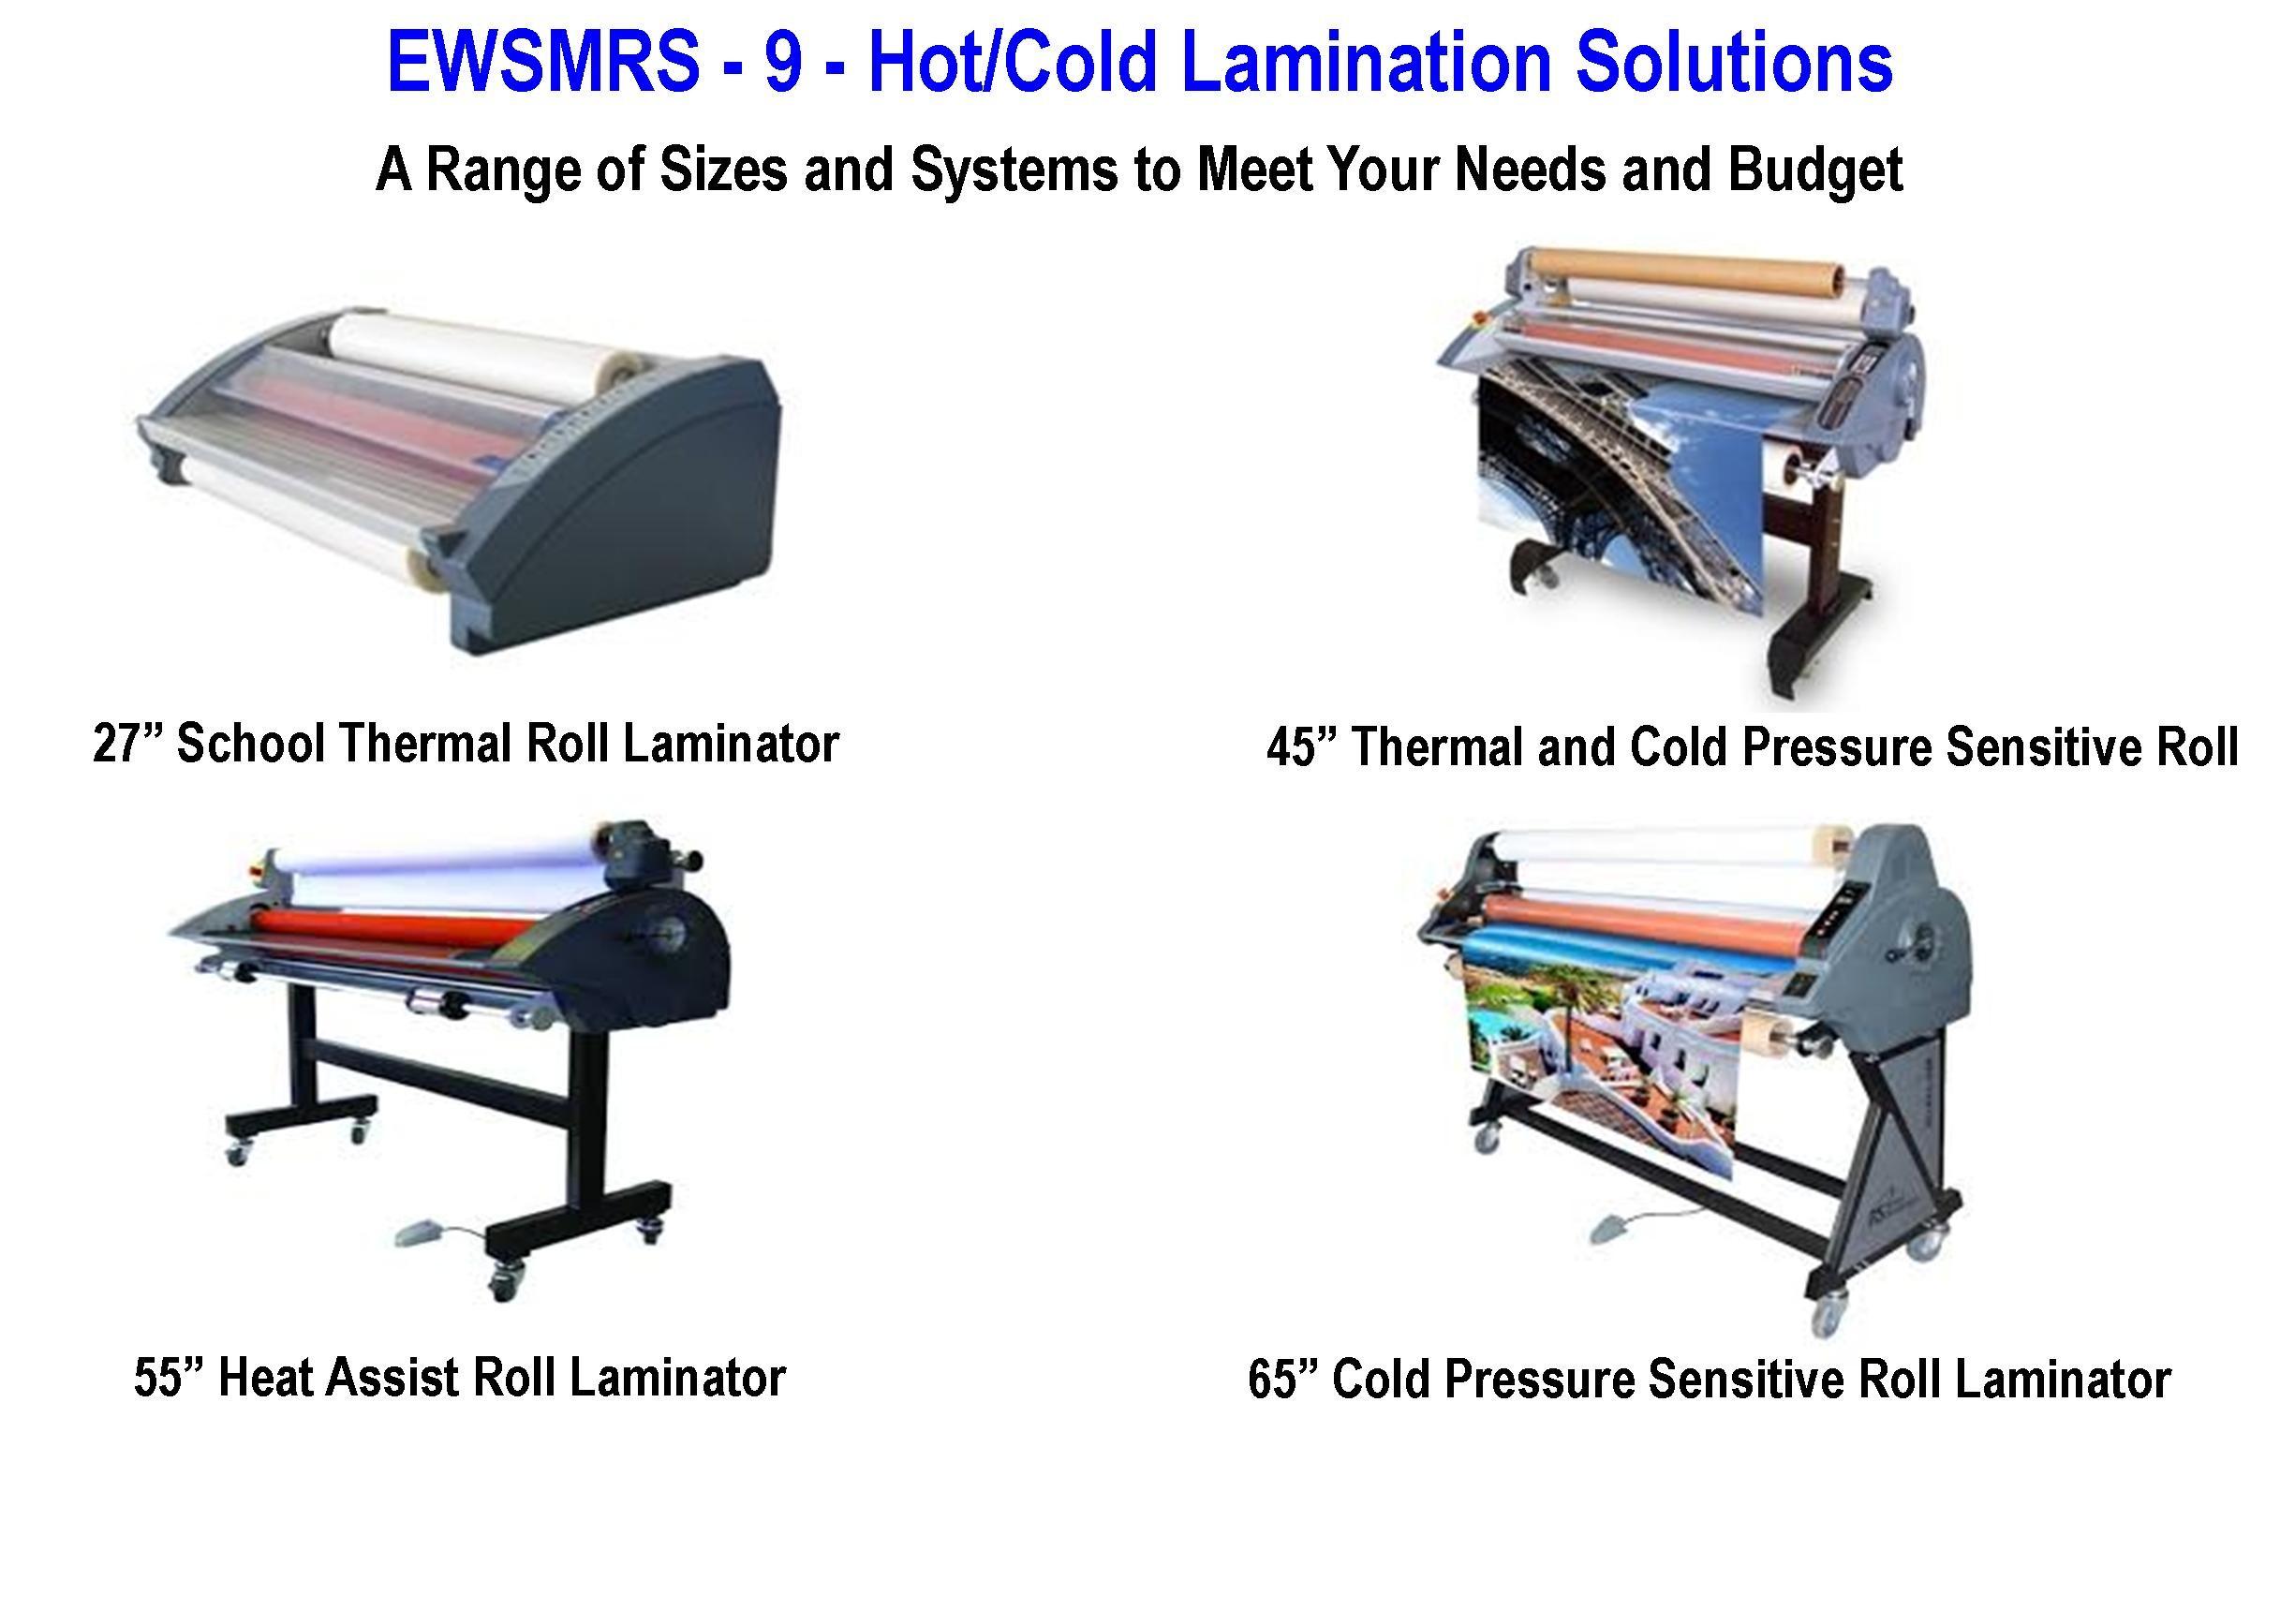 EWSMRS - 9 Hot/Cold Lamination Solutions